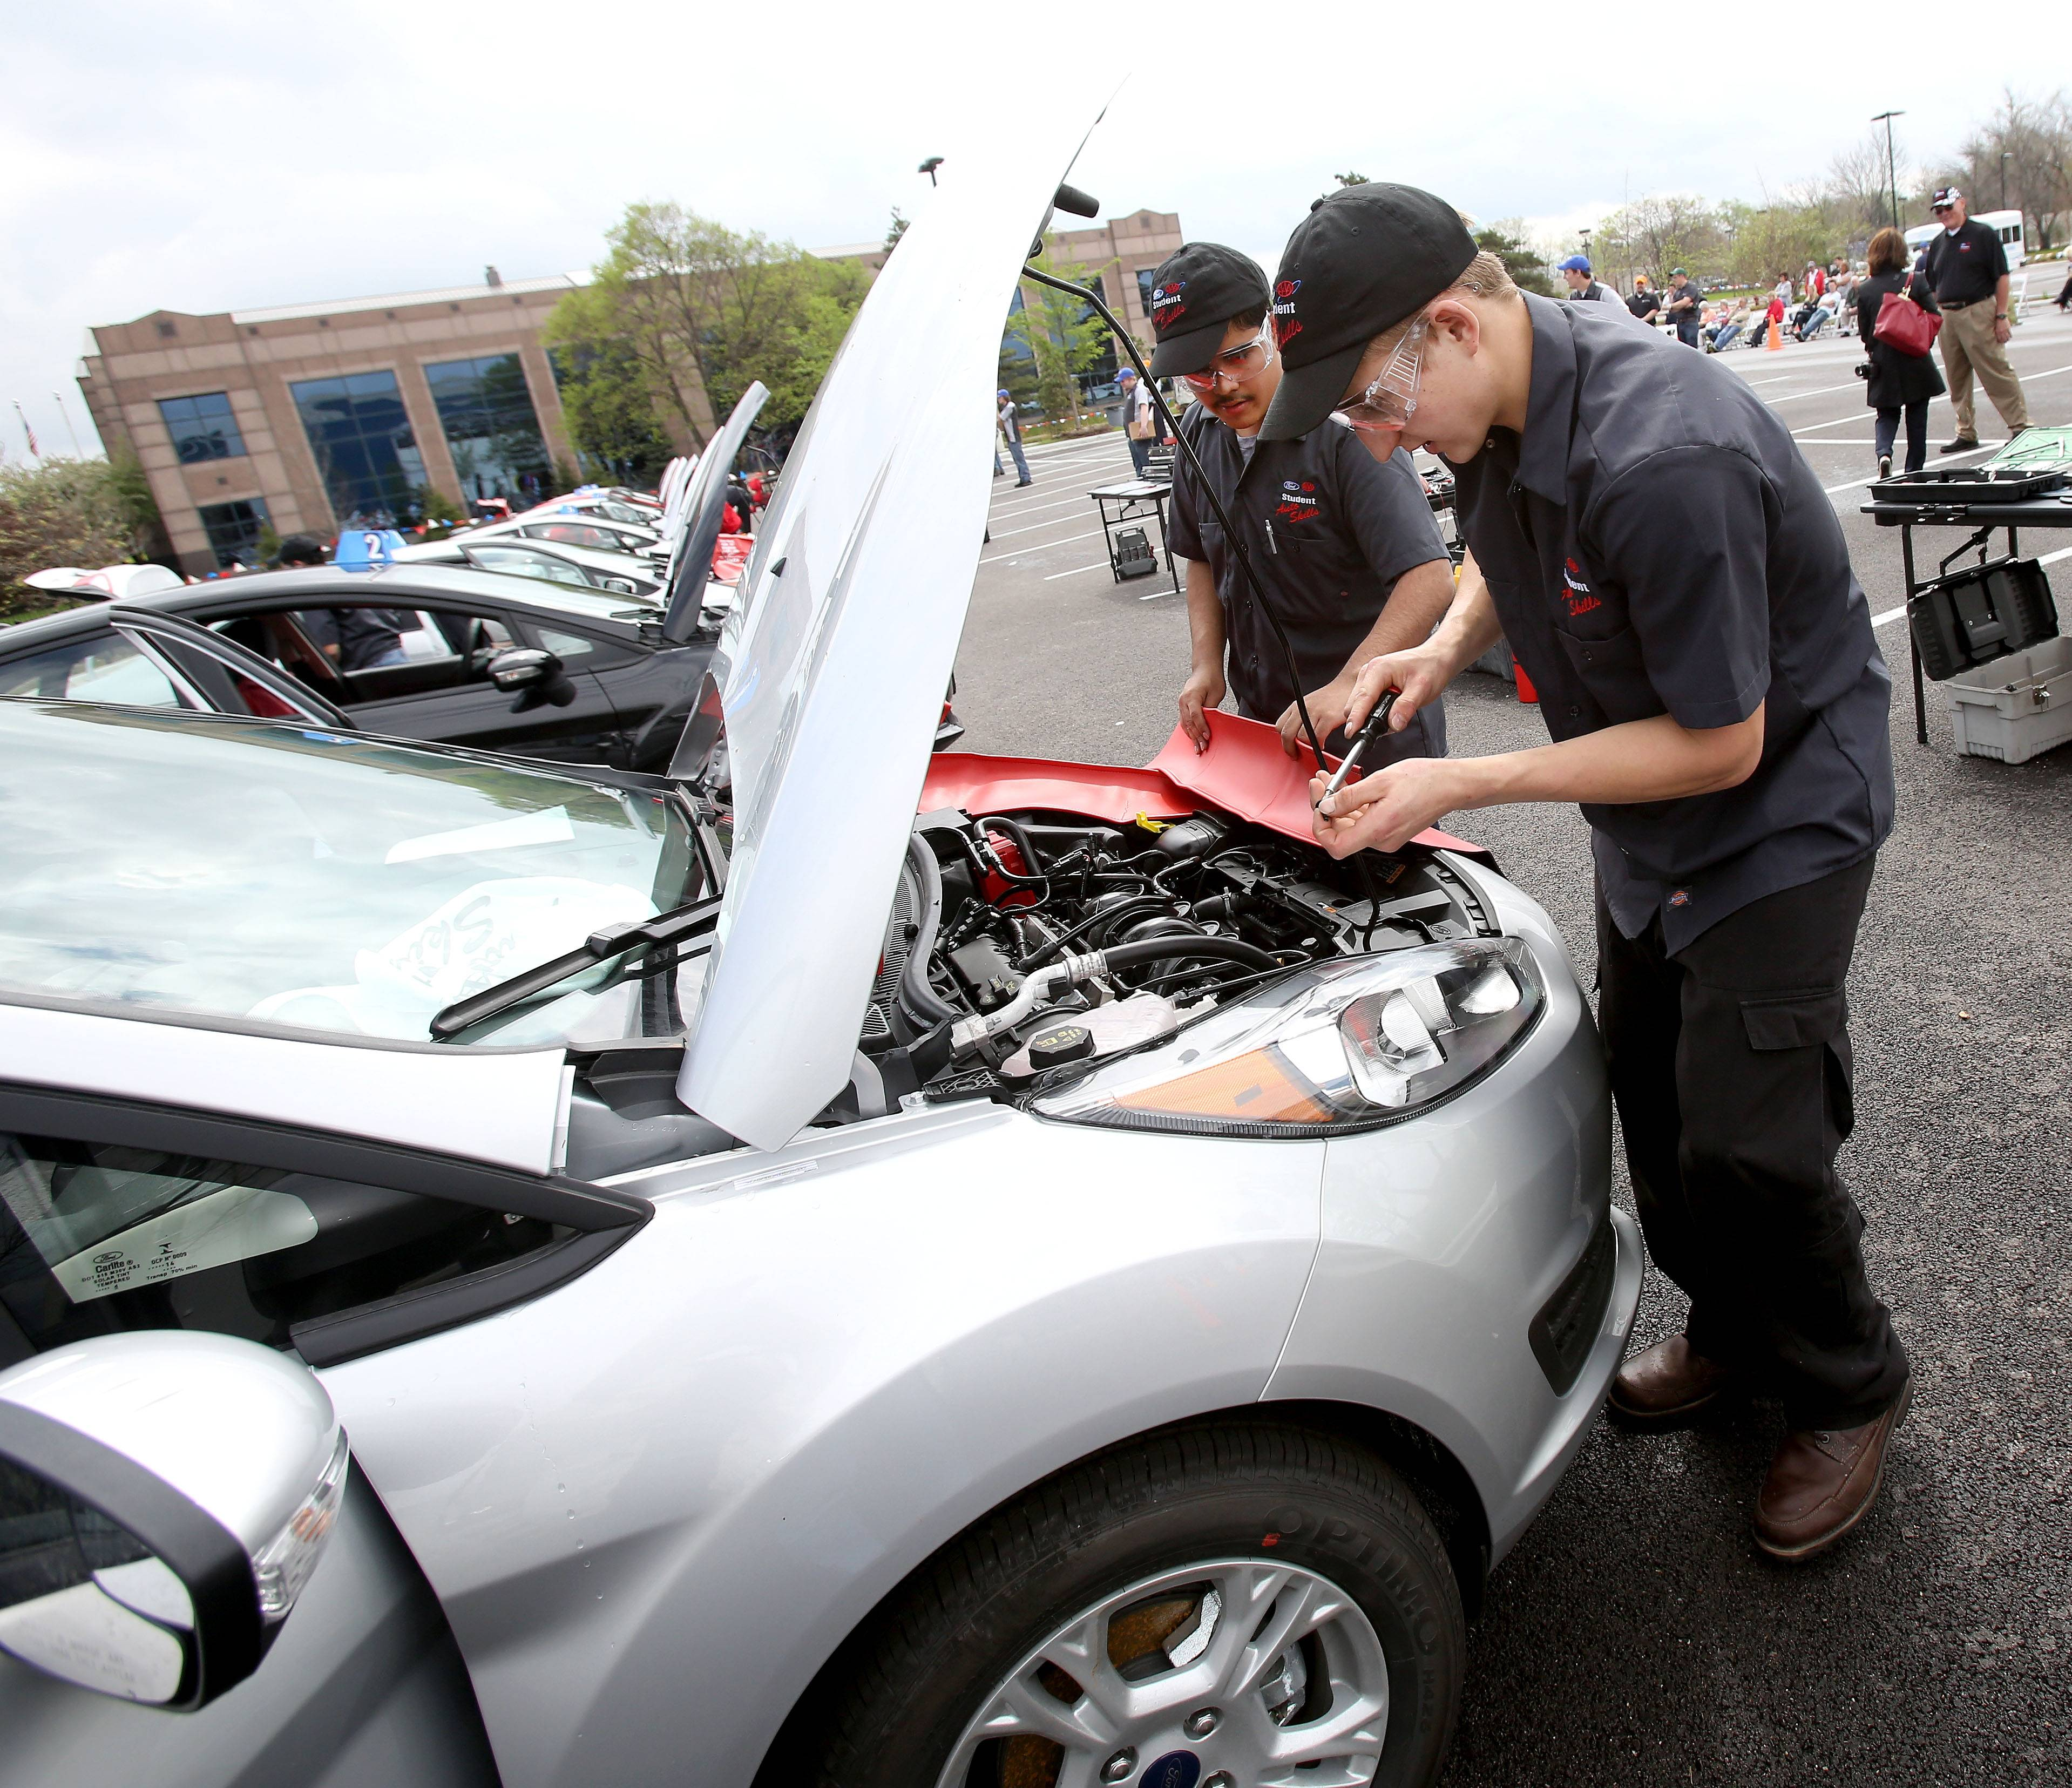 Bev Horne/bhorne@dailyherald.comChristian Ramirez, left, and Edward Pszczolkowski of Hoffman Esates High School won second place in Friday's Ford/AAA Student Auto Skills competition at Universal Technical Institute in Lisle.